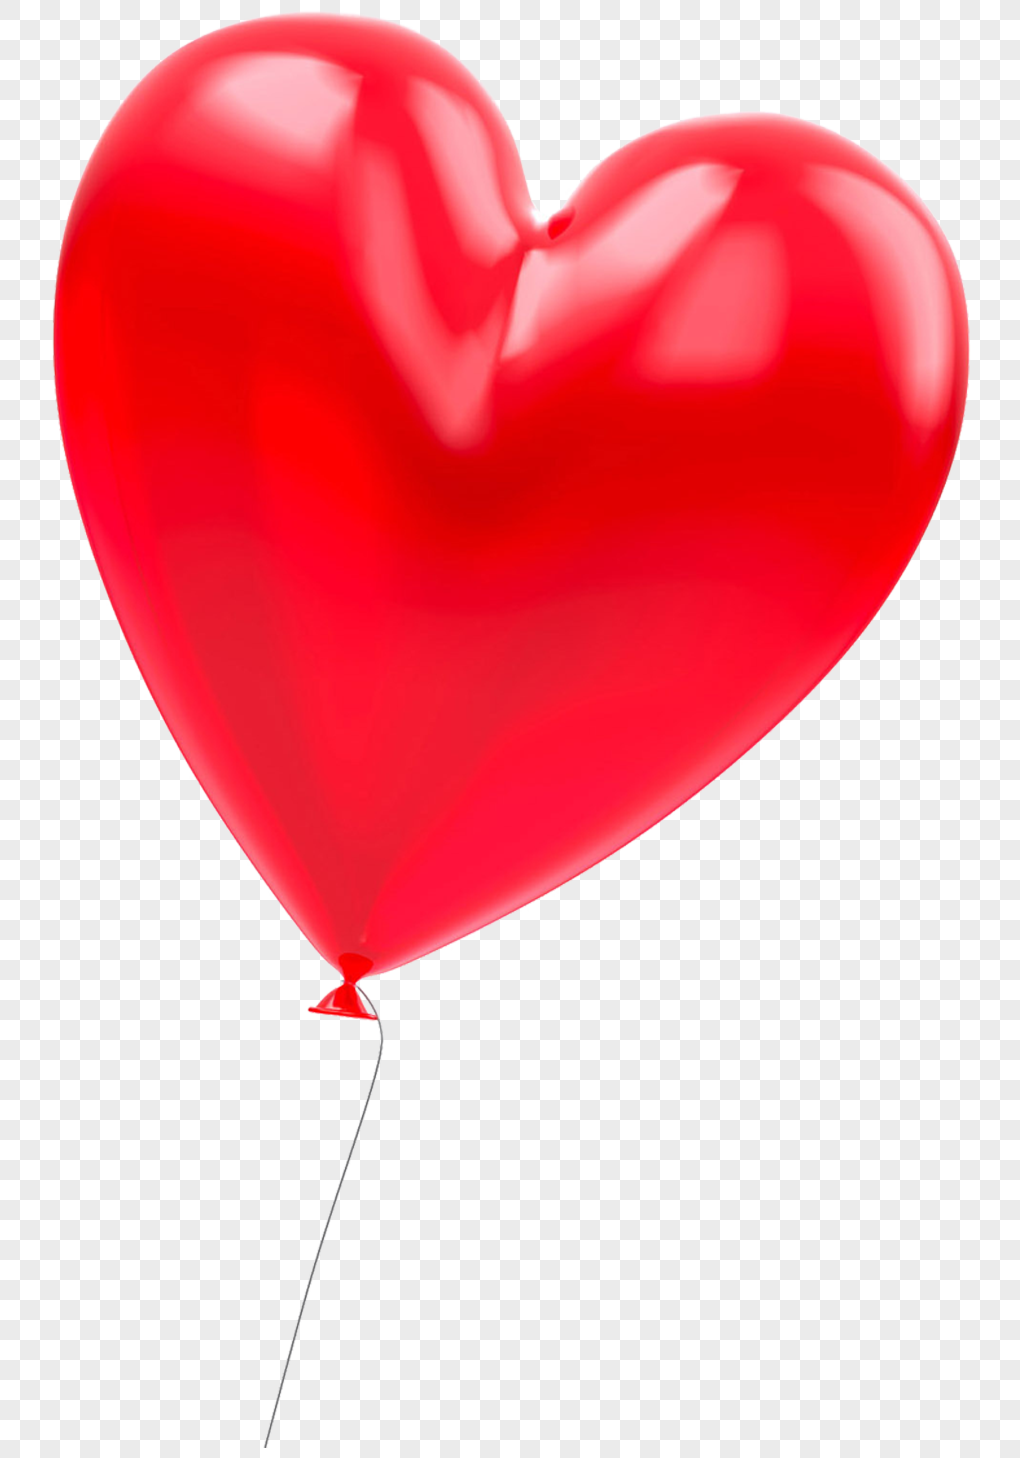 Red Heart Shaped Balloon Png Imagepicture Free Download